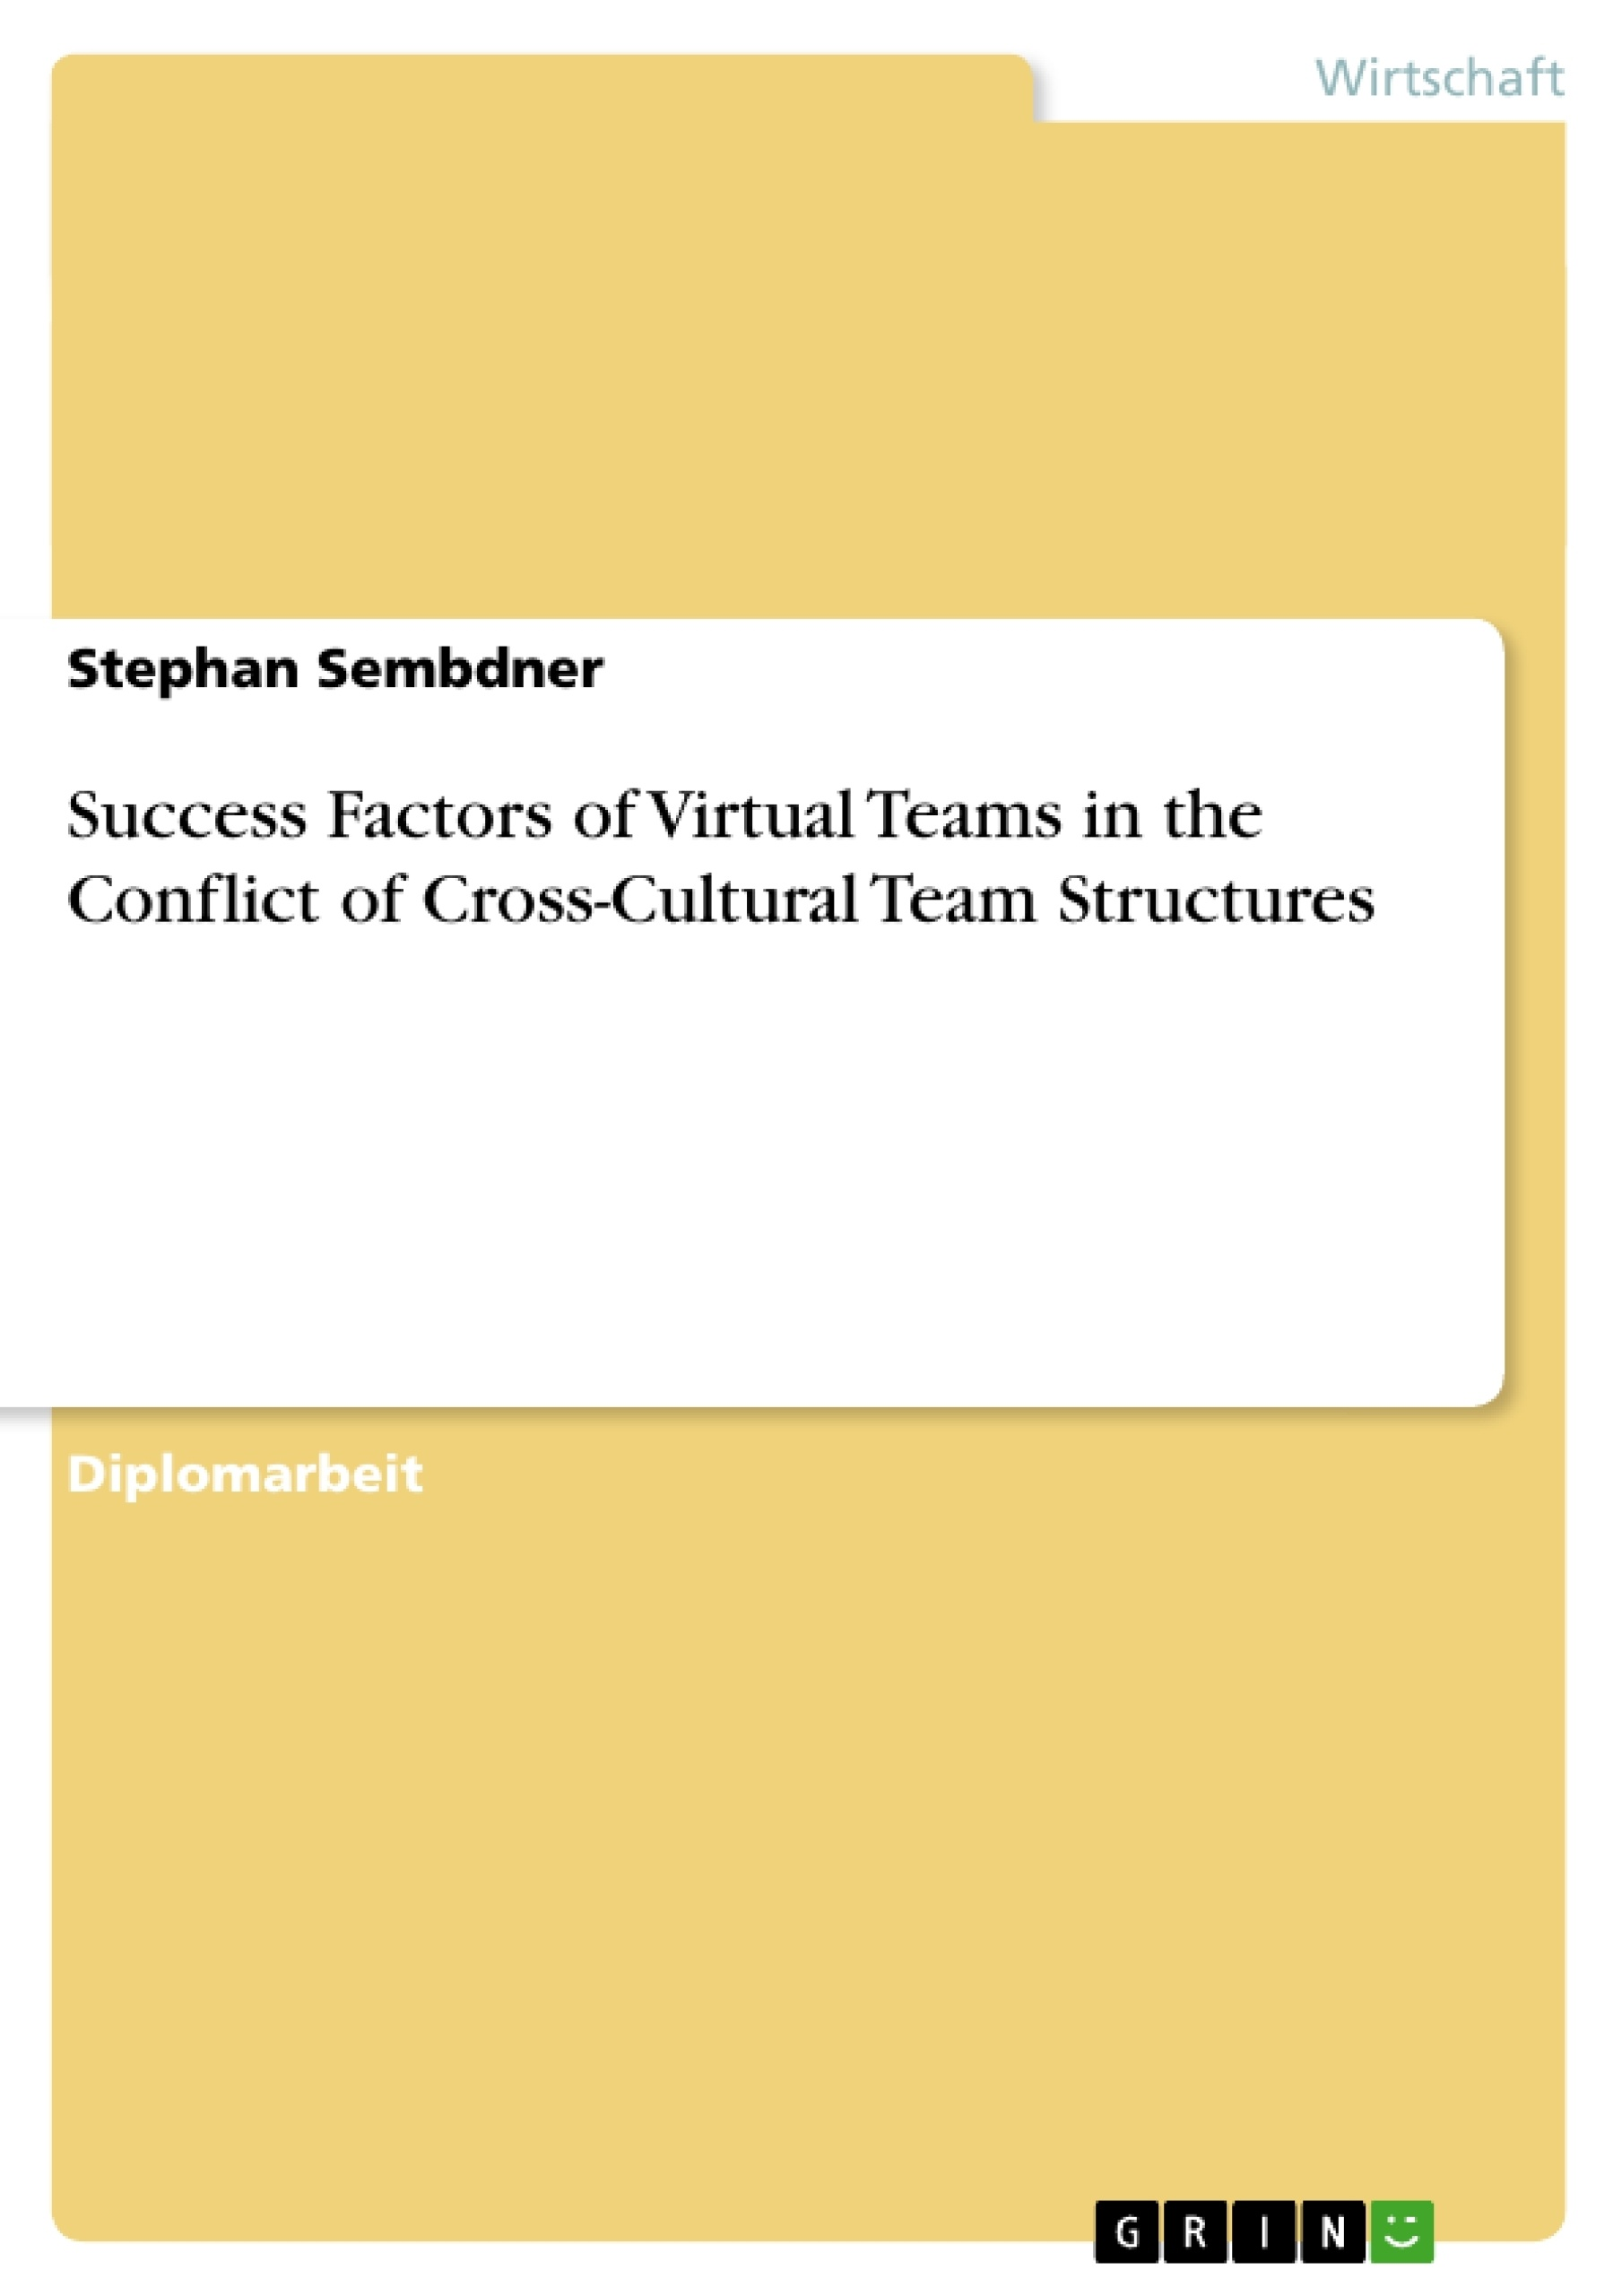 Titel: Success Factors of Virtual Teams in the Conflict of Cross-Cultural Team Structures